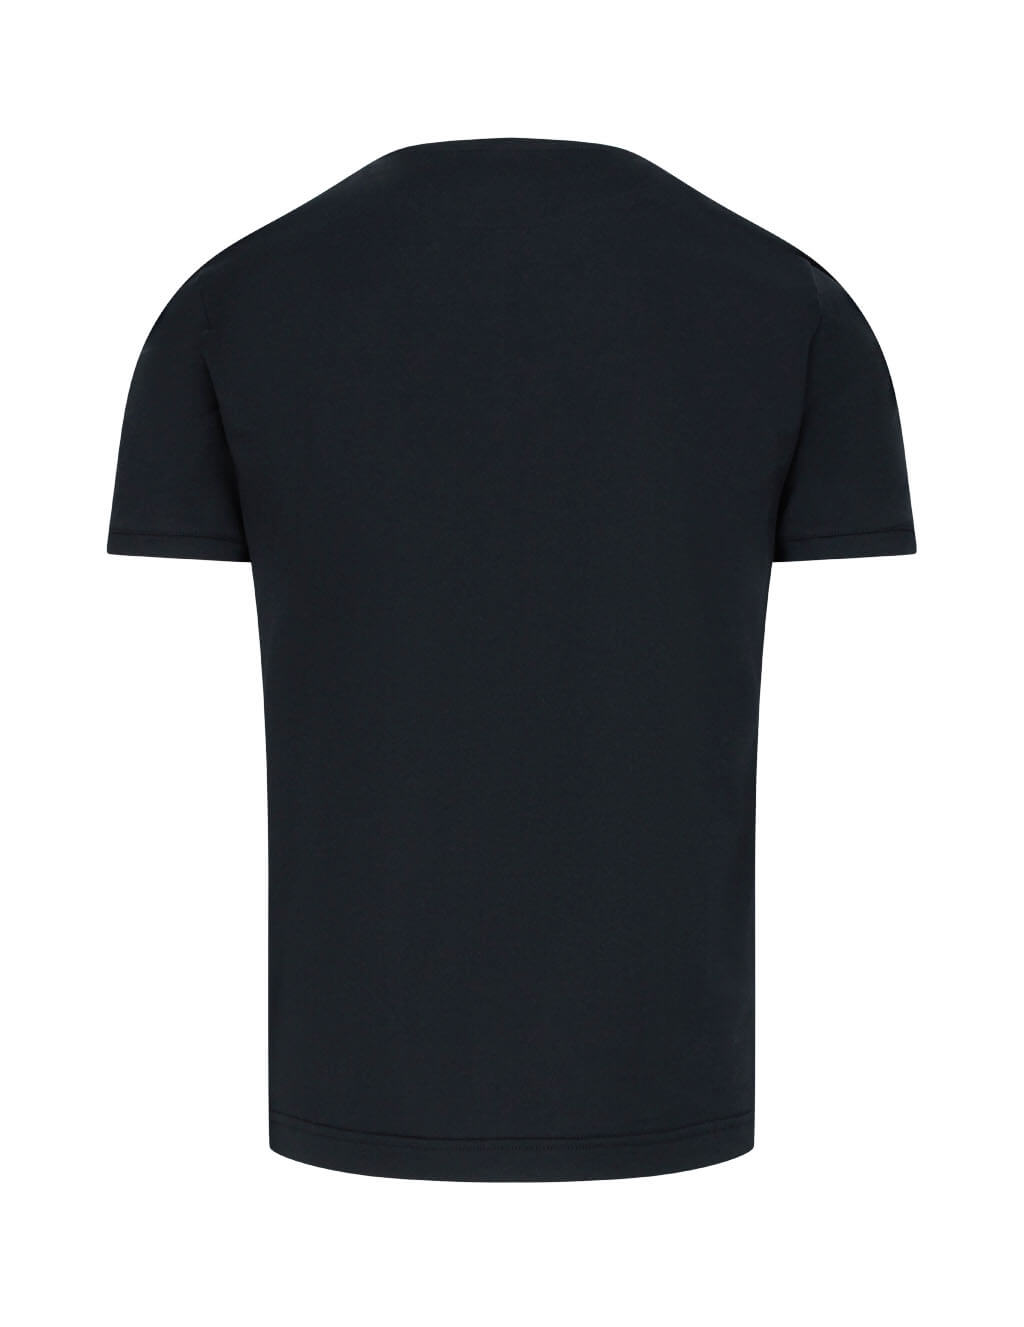 Fendi Men's Giulio Fashion Black Jersey T-Shirt FY0894AAOSF0QA1